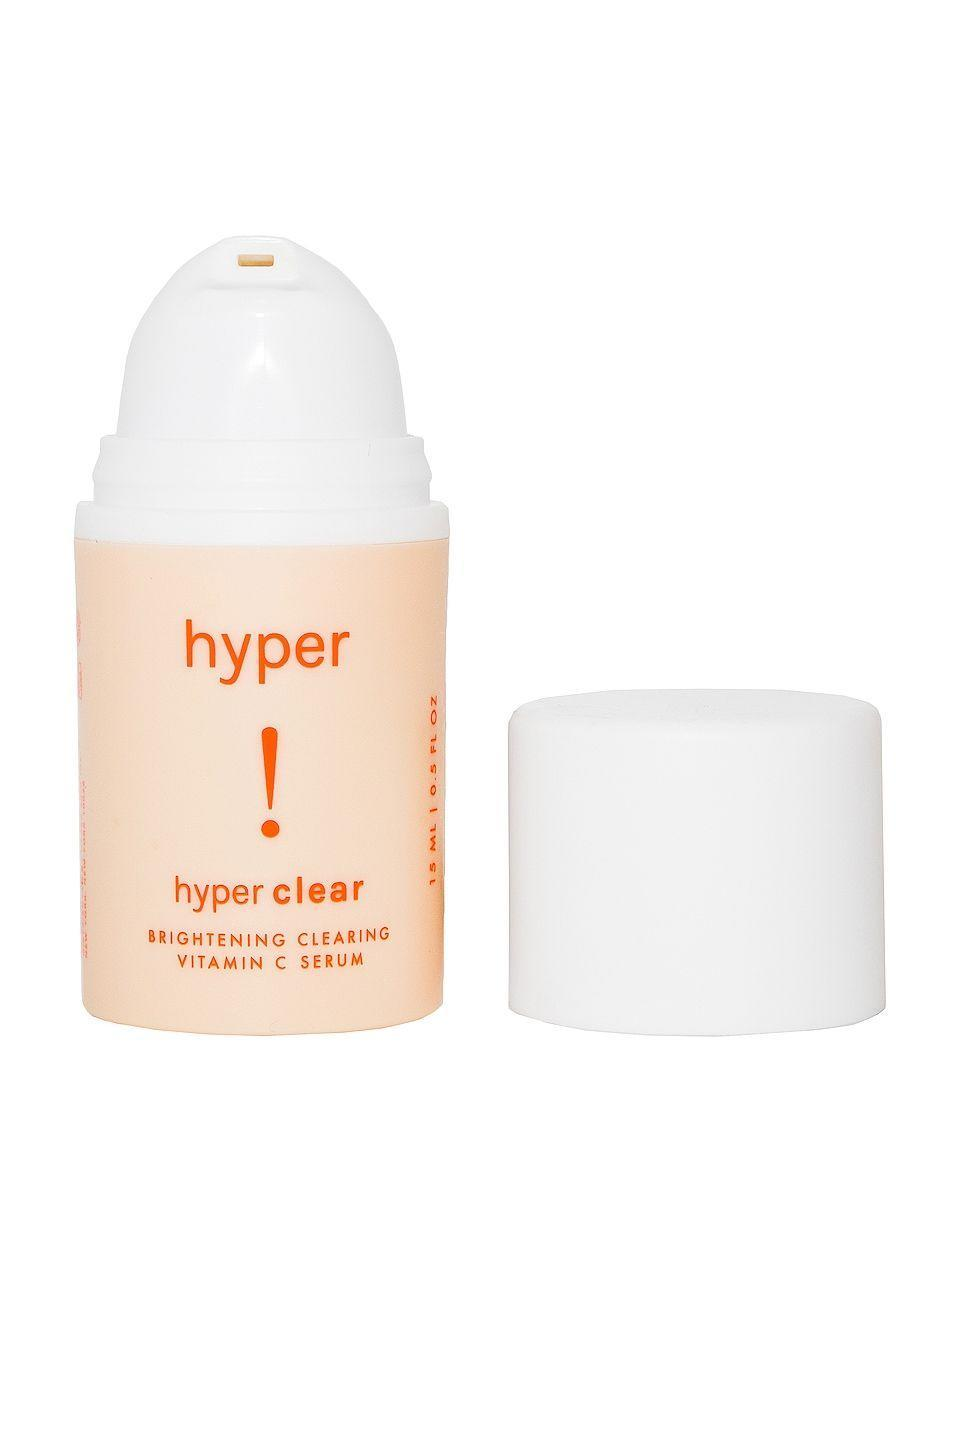 "<p><strong>Hyper Skin</strong></p><p>revolve.com</p><p><strong>$36.00</strong></p><p><a href=""https://go.redirectingat.com?id=74968X1596630&url=https%3A%2F%2Fwww.revolve.com%2Fdp%2FHYPR-WU1%2F&sref=https%3A%2F%2Fwww.cosmopolitan.com%2Fstyle-beauty%2Fbeauty%2Fg12091058%2Fbest-vitamin-c-serum-face-skin%2F"" rel=""nofollow noopener"" target=""_blank"" data-ylk=""slk:Shop Now"" class=""link rapid-noclick-resp"">Shop Now</a></p><p>Everyone—no matter your skin type or skin tone—can use this brightening face serum. It's<strong> filled with 15 percent vitamin C, turmeric, kojic acid, and fruit enzymes </strong>which work together to dramatically fade dark spots and old <a href=""https://www.cosmopolitan.com/style-beauty/beauty/advice/g3017/how-to-get-rid-of-acne-scars/"" rel=""nofollow noopener"" target=""_blank"" data-ylk=""slk:acne scars"" class=""link rapid-noclick-resp"">acne scars</a>.</p>"